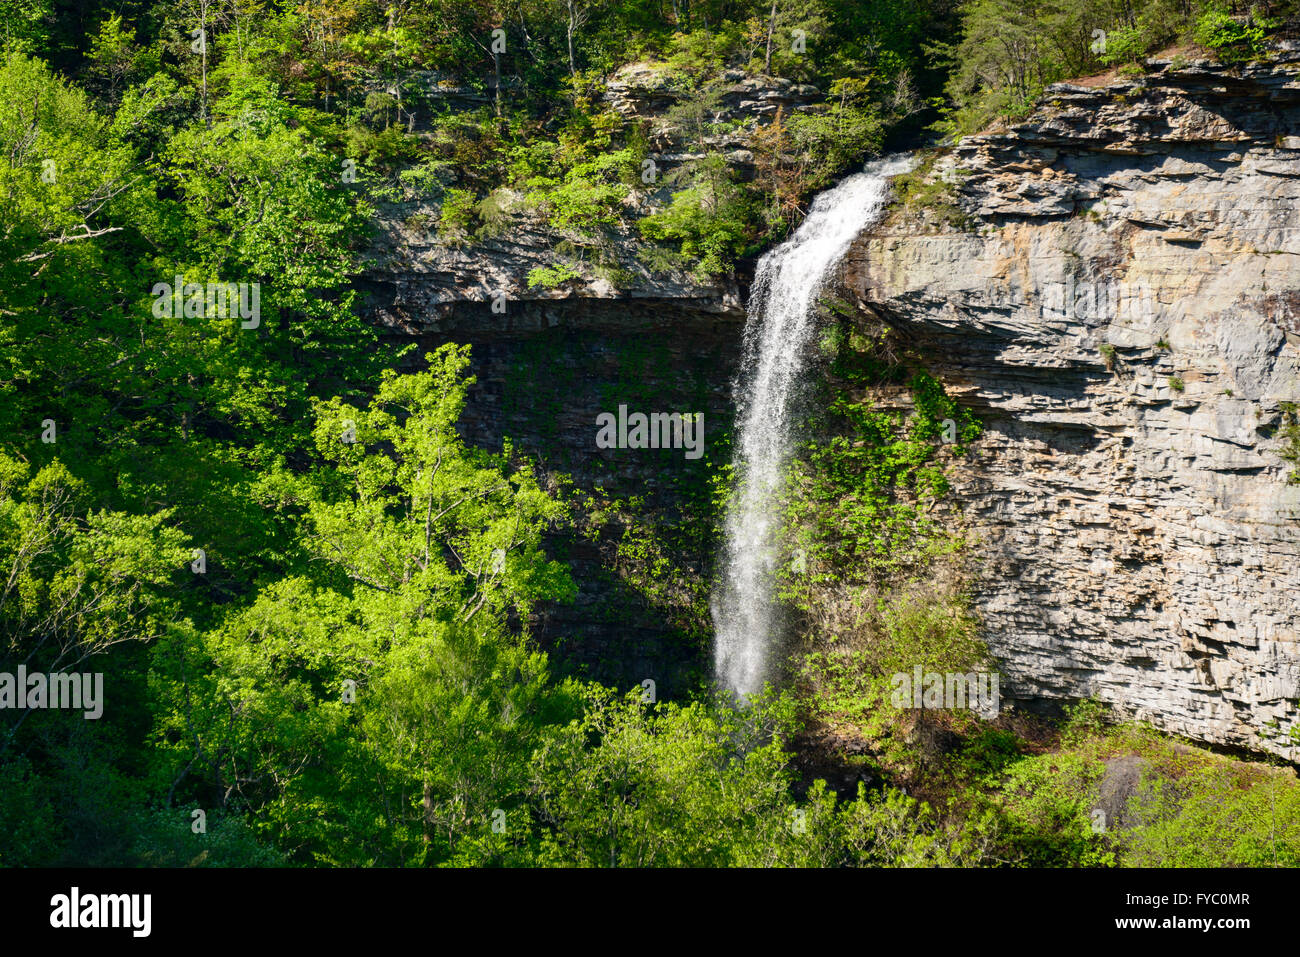 Little River Canyon National Preserve - Stock Image